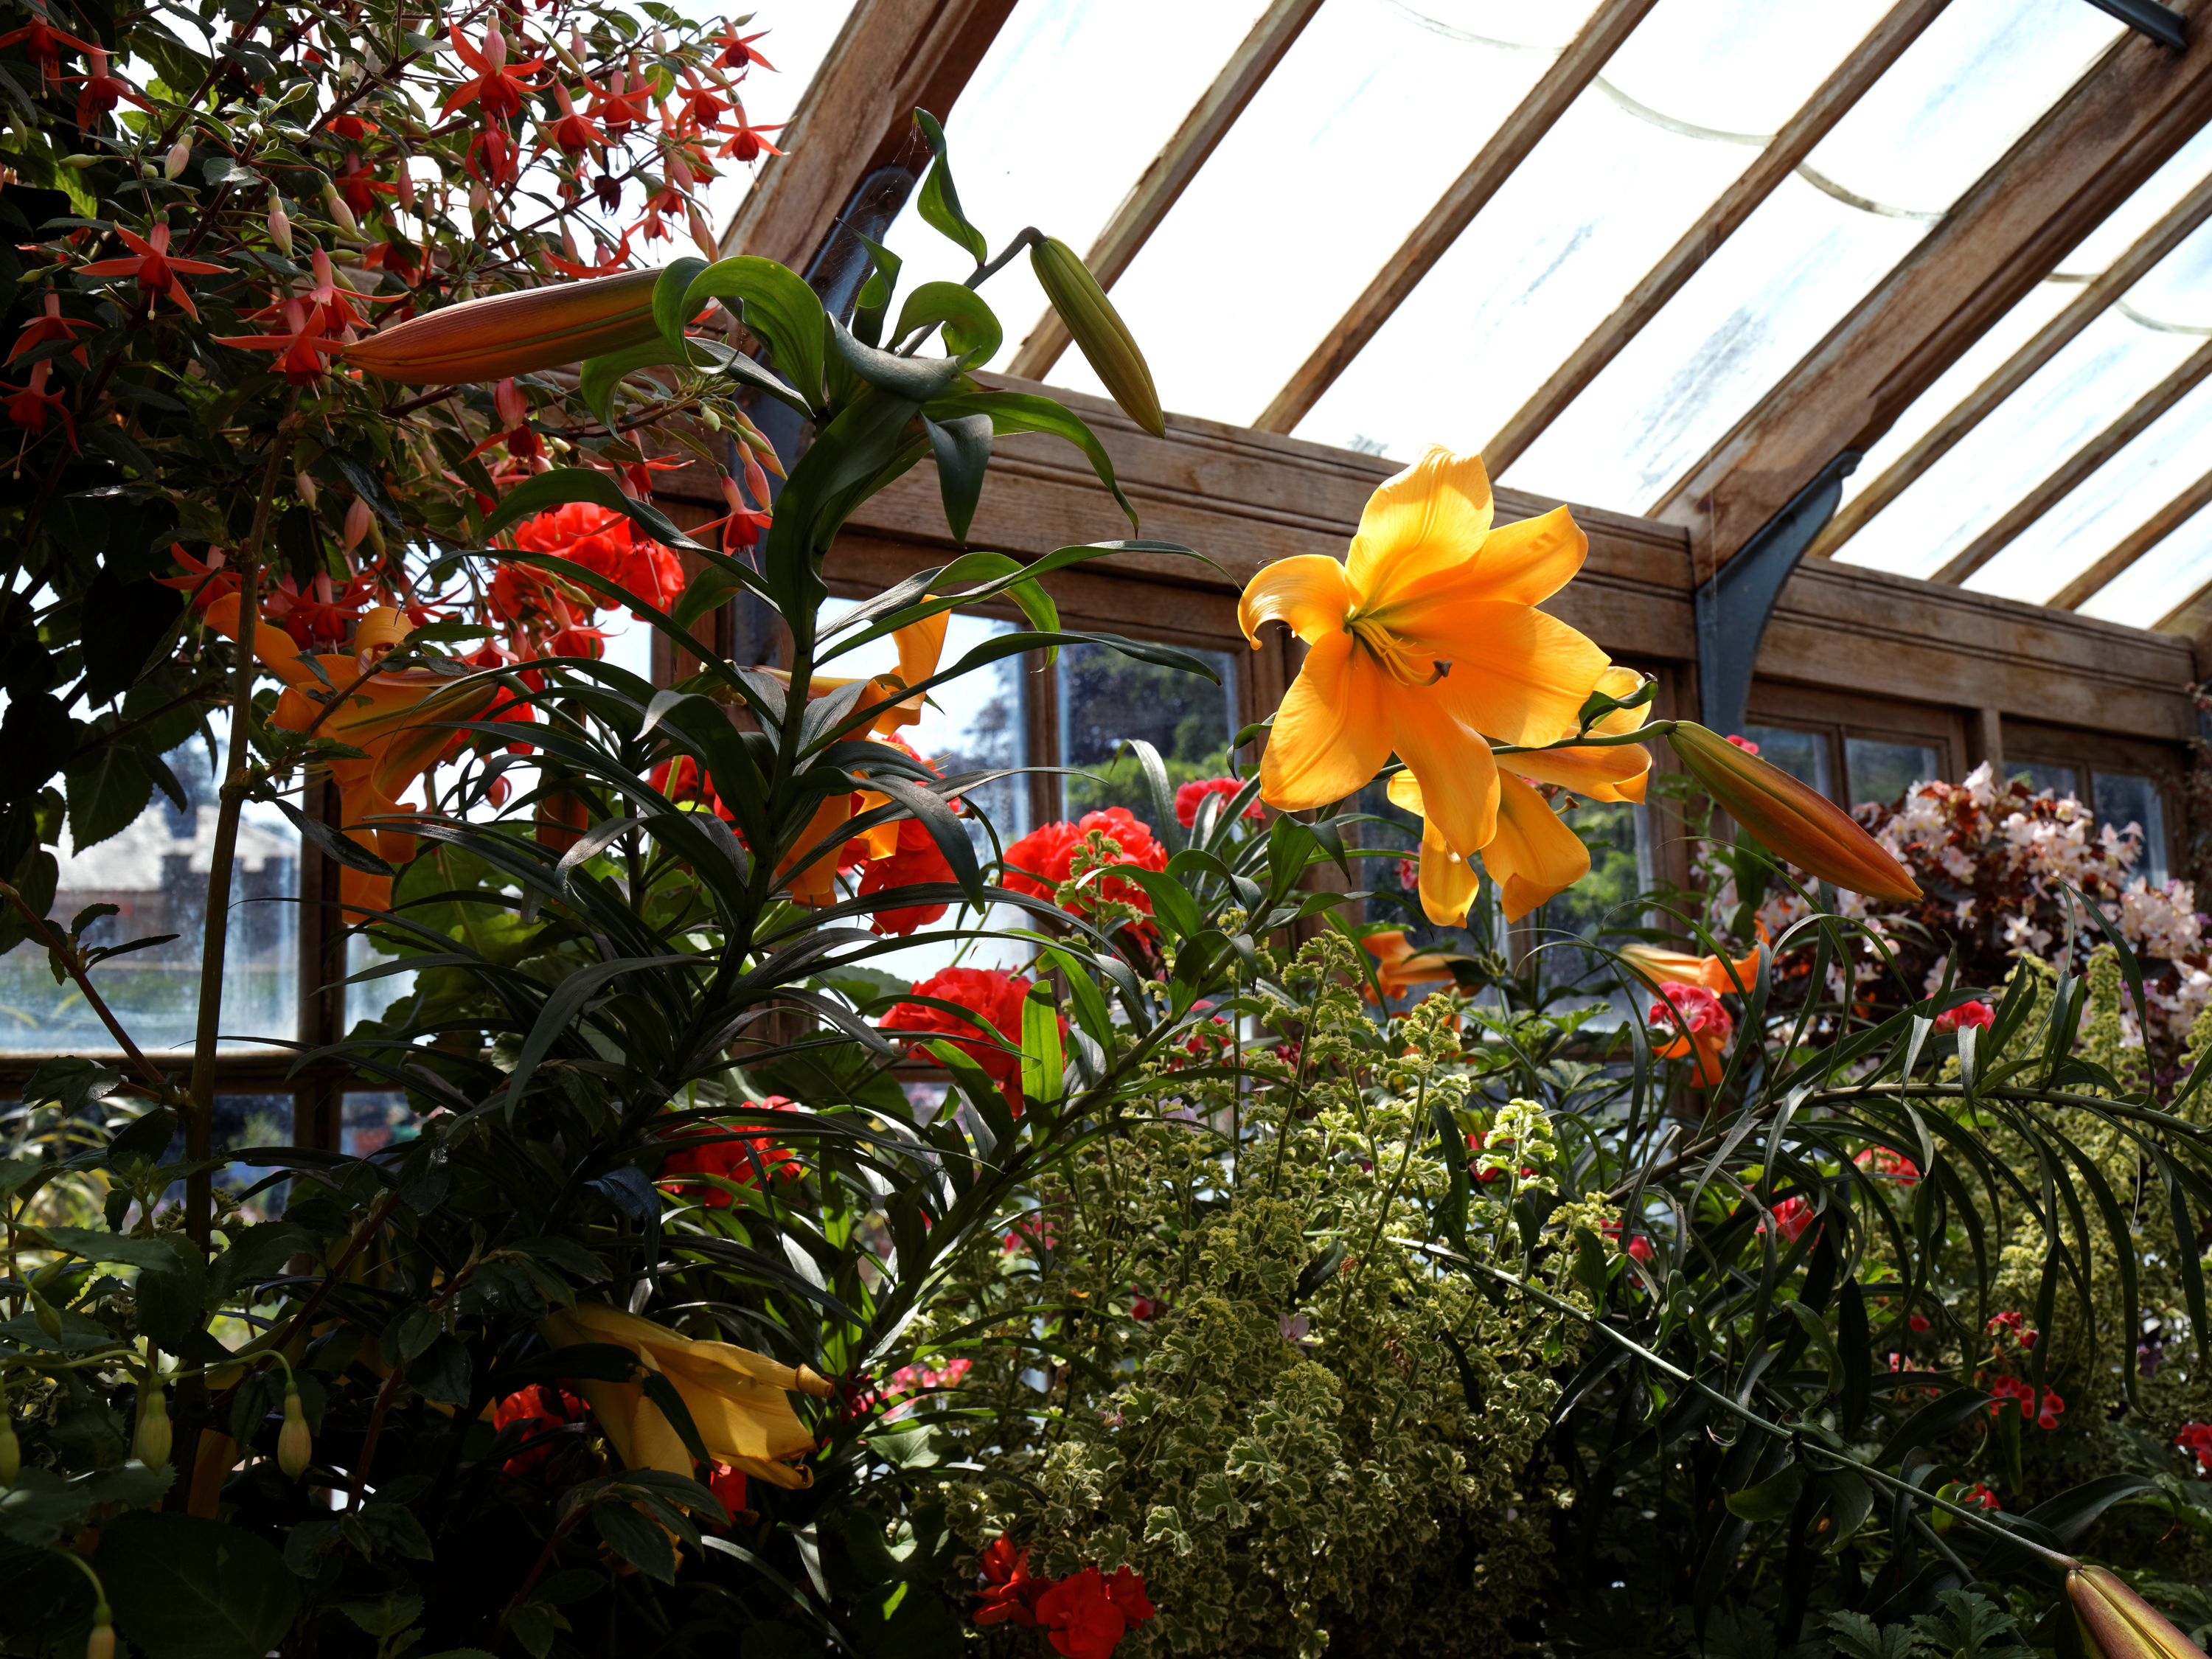 File:\'Lilium Golden Splendour\' in the Walled Garden greenhouse at ...